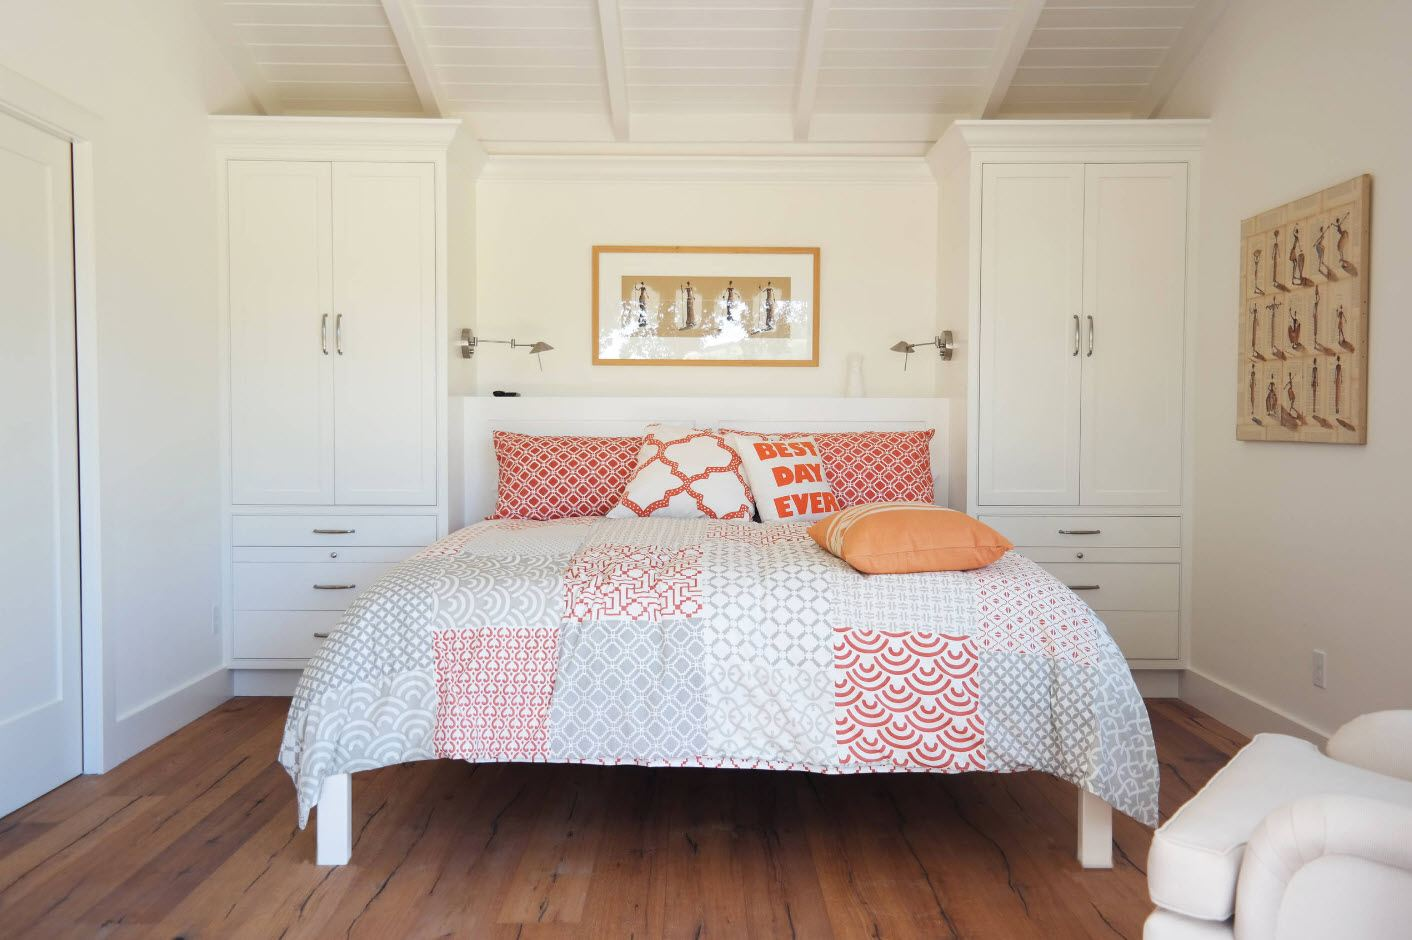 120 Square Feet Bedroom Interior Decoration Ideas. Neat arrangement of in Classic style